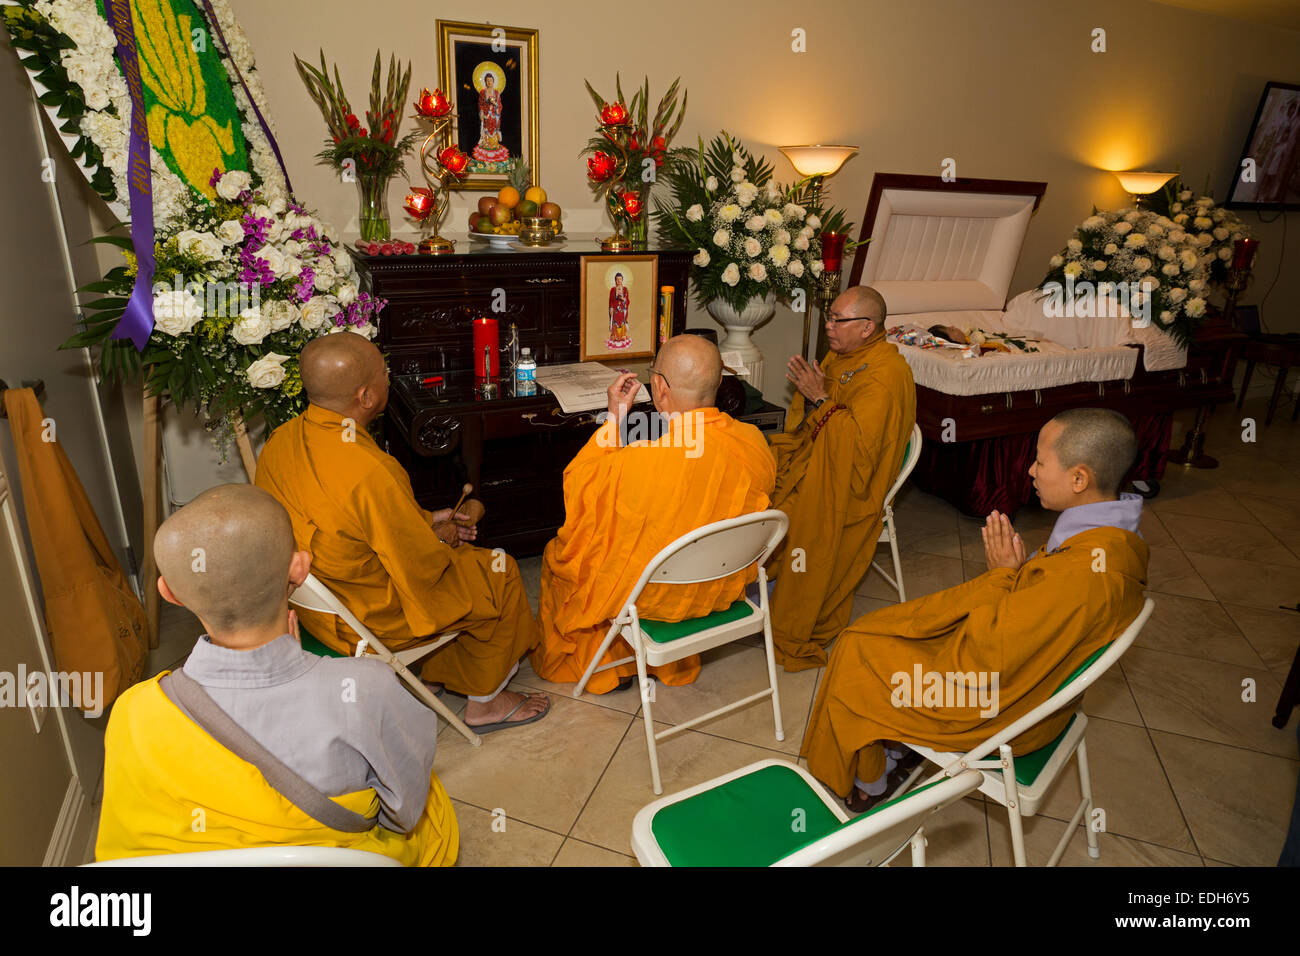 Buddhist monks, mourners, praying, Vietnamese funeral, memorial service, Little Saigon, city of Westminster, California Stock Photo